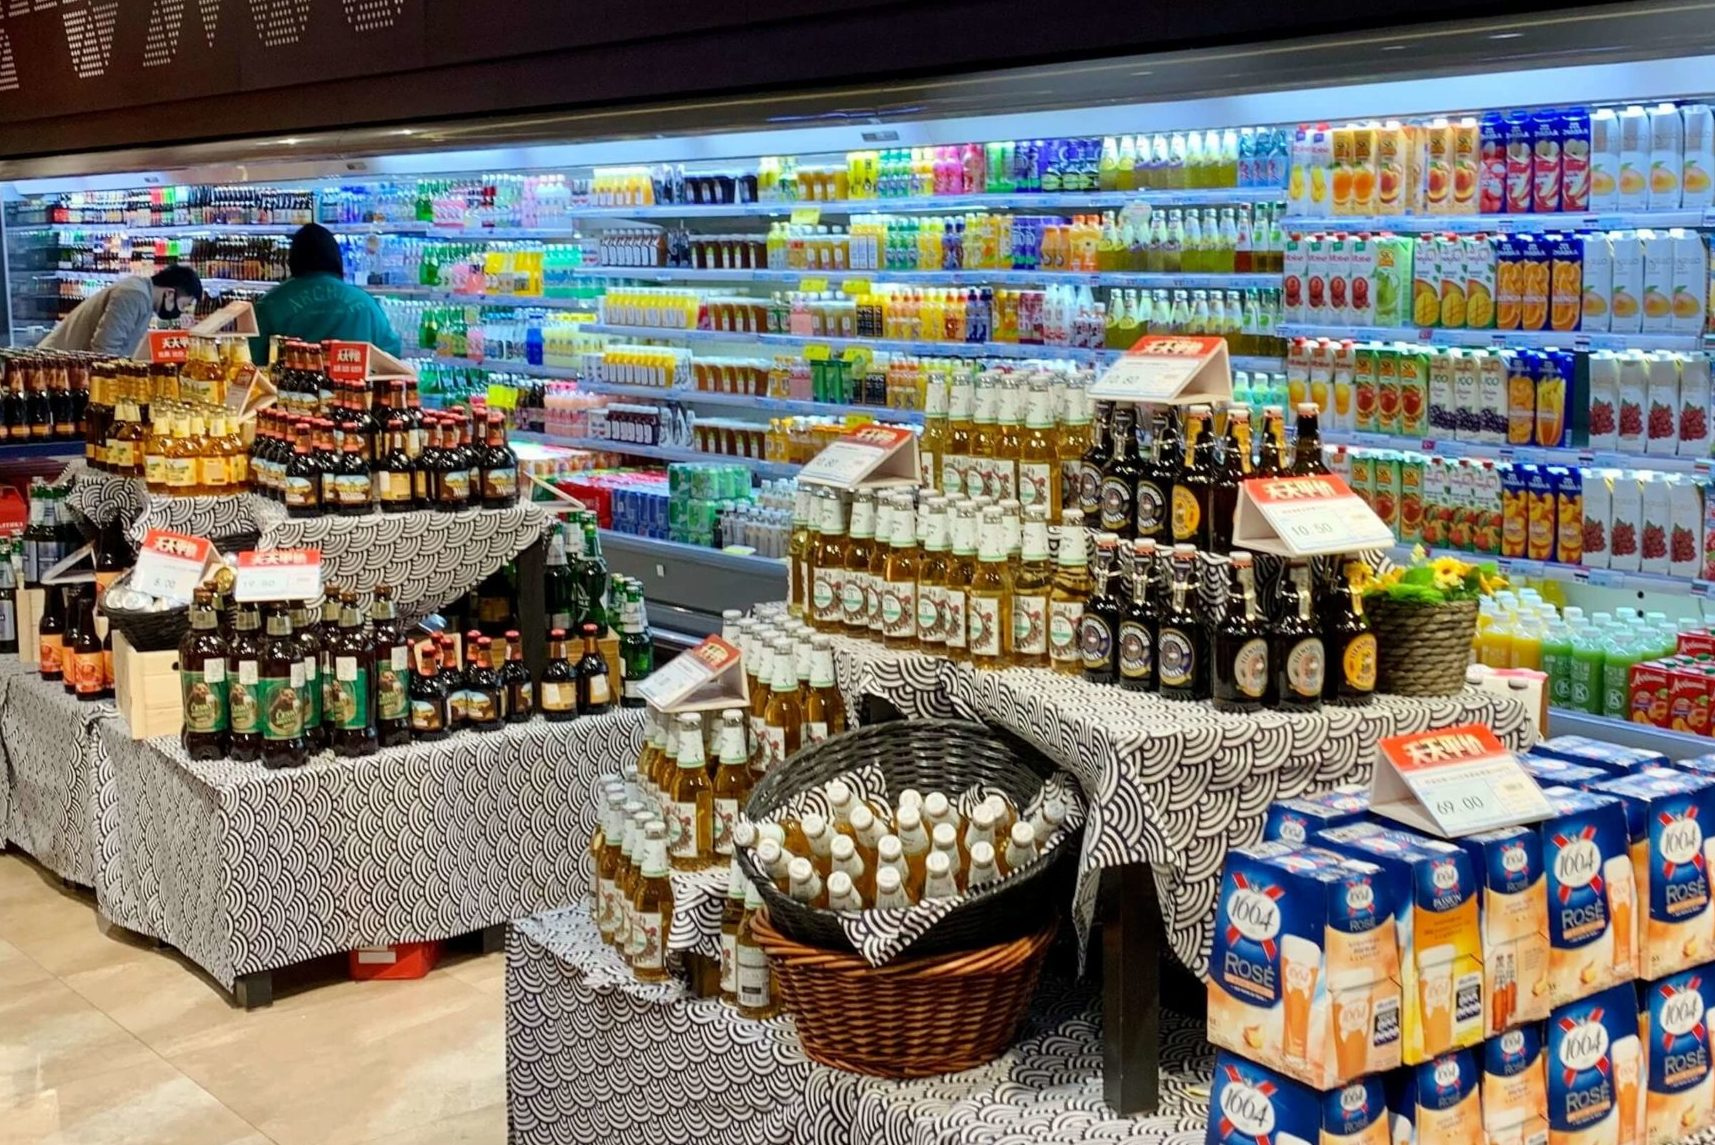 Inside of Grocery Store